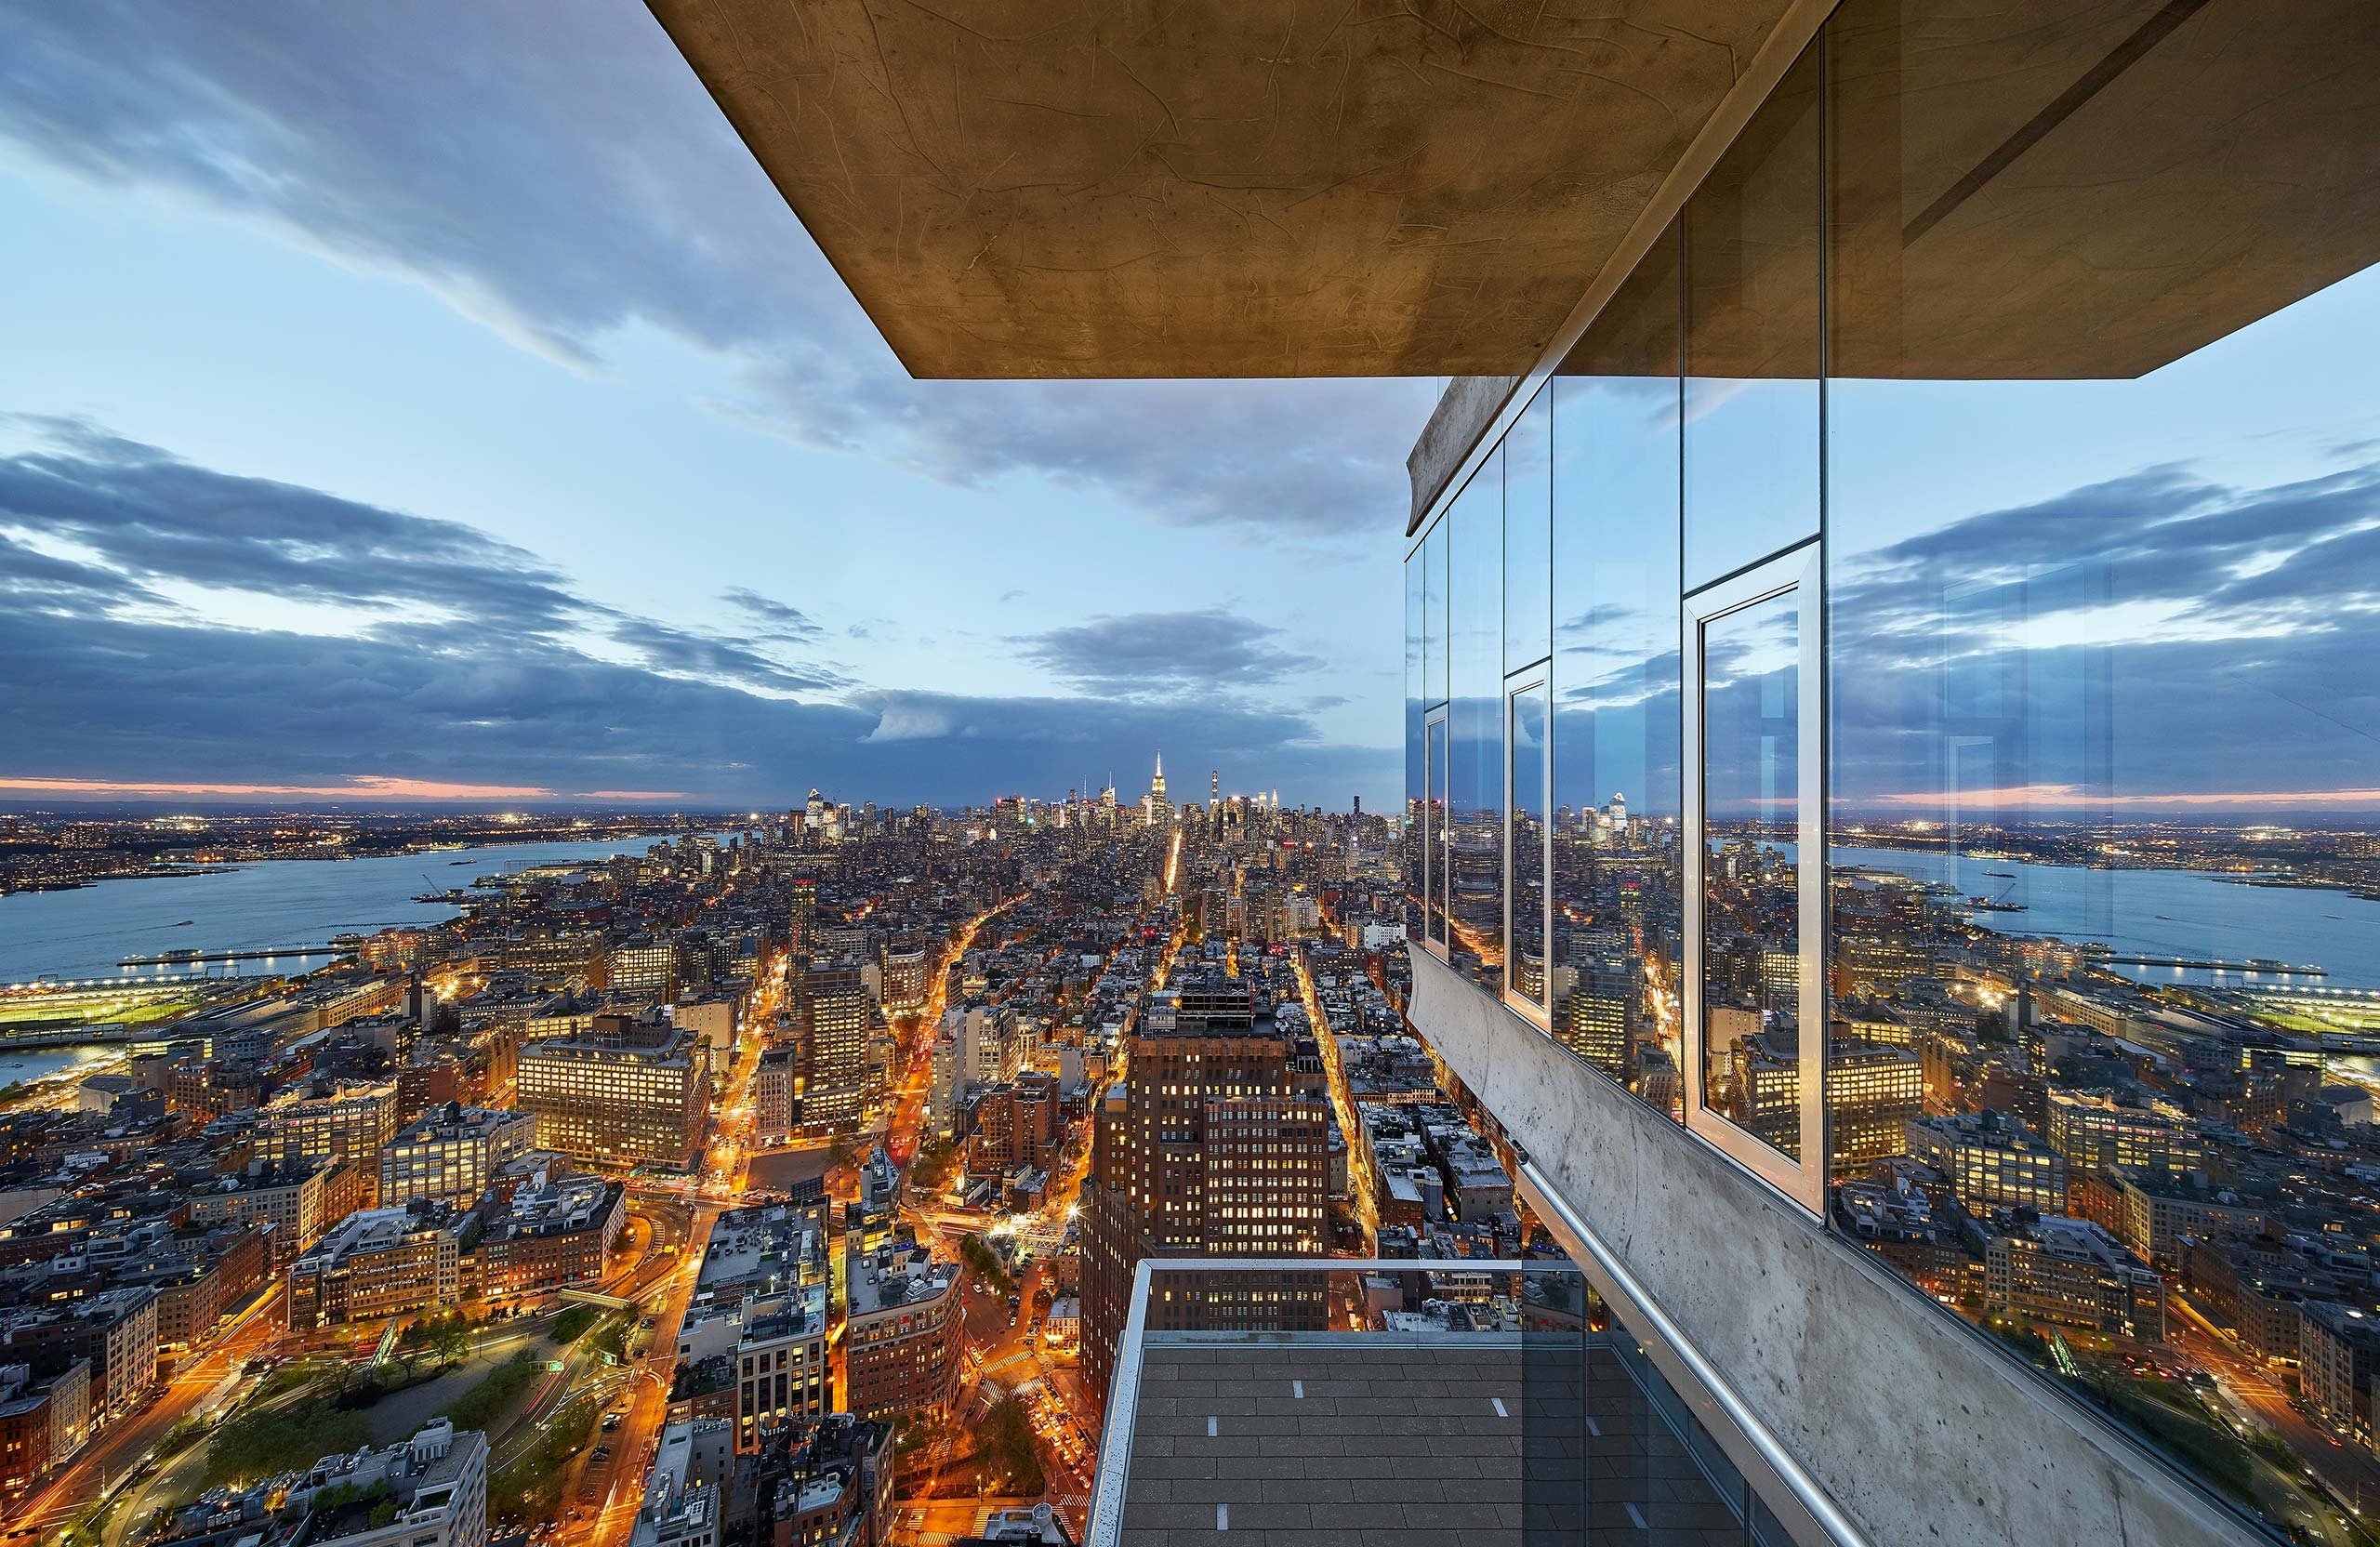 the priciest penthouse at 56 leonard has sold making this the cityu0027s most expensive sale for the month of june and the priciest sale in new york history